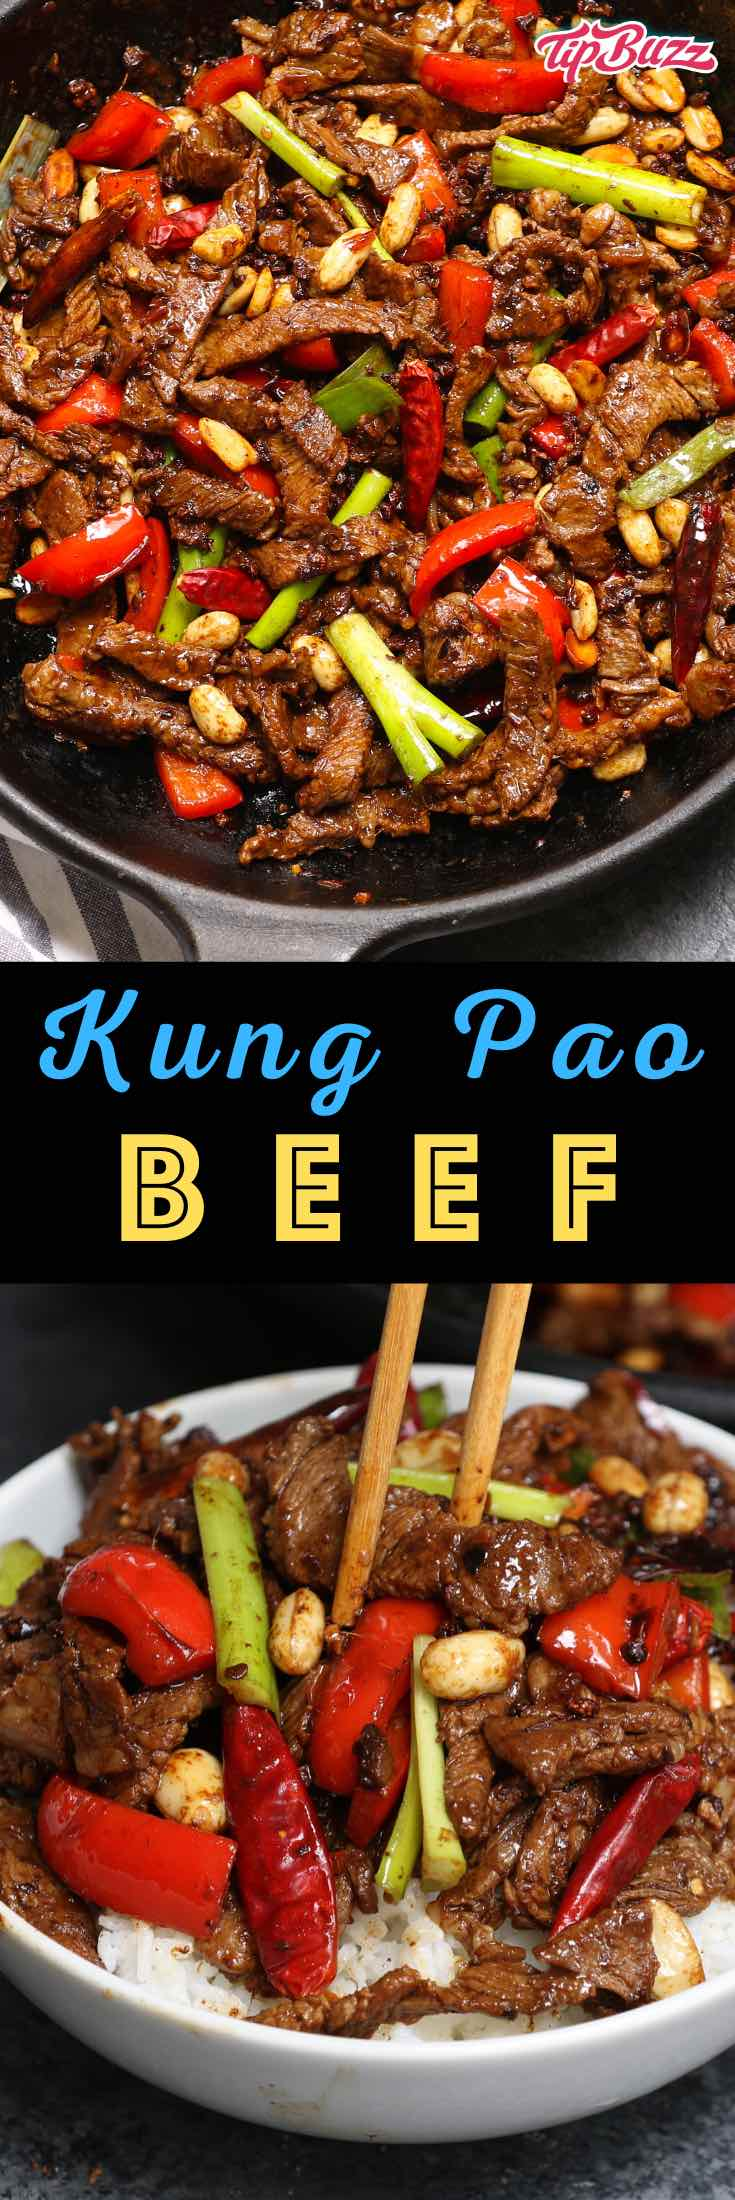 Kung Pao Beef is a fiery Szechuan dish with sweet and savory flavors just like kung pao chicken! Tender strips of beef are combined with seasonings and vegetables in this delicious stir-fry! #szechuanbeef #kungpaobeef